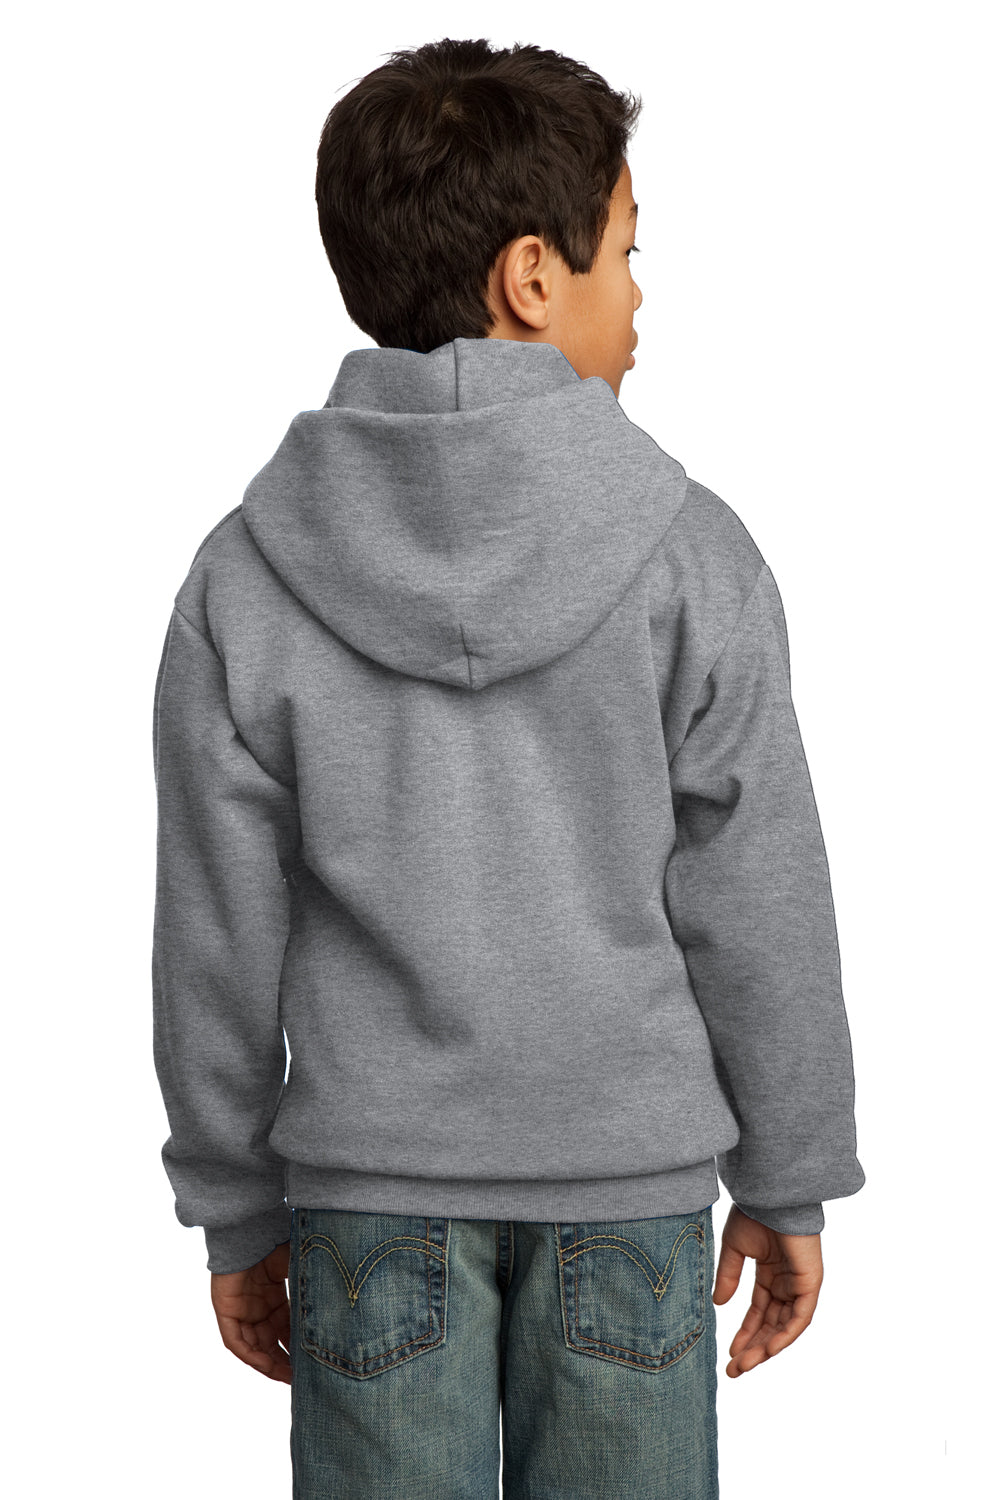 Port & Company PC90YH Youth Core Fleece Hooded Sweatshirt Hoodie Heather Grey Back